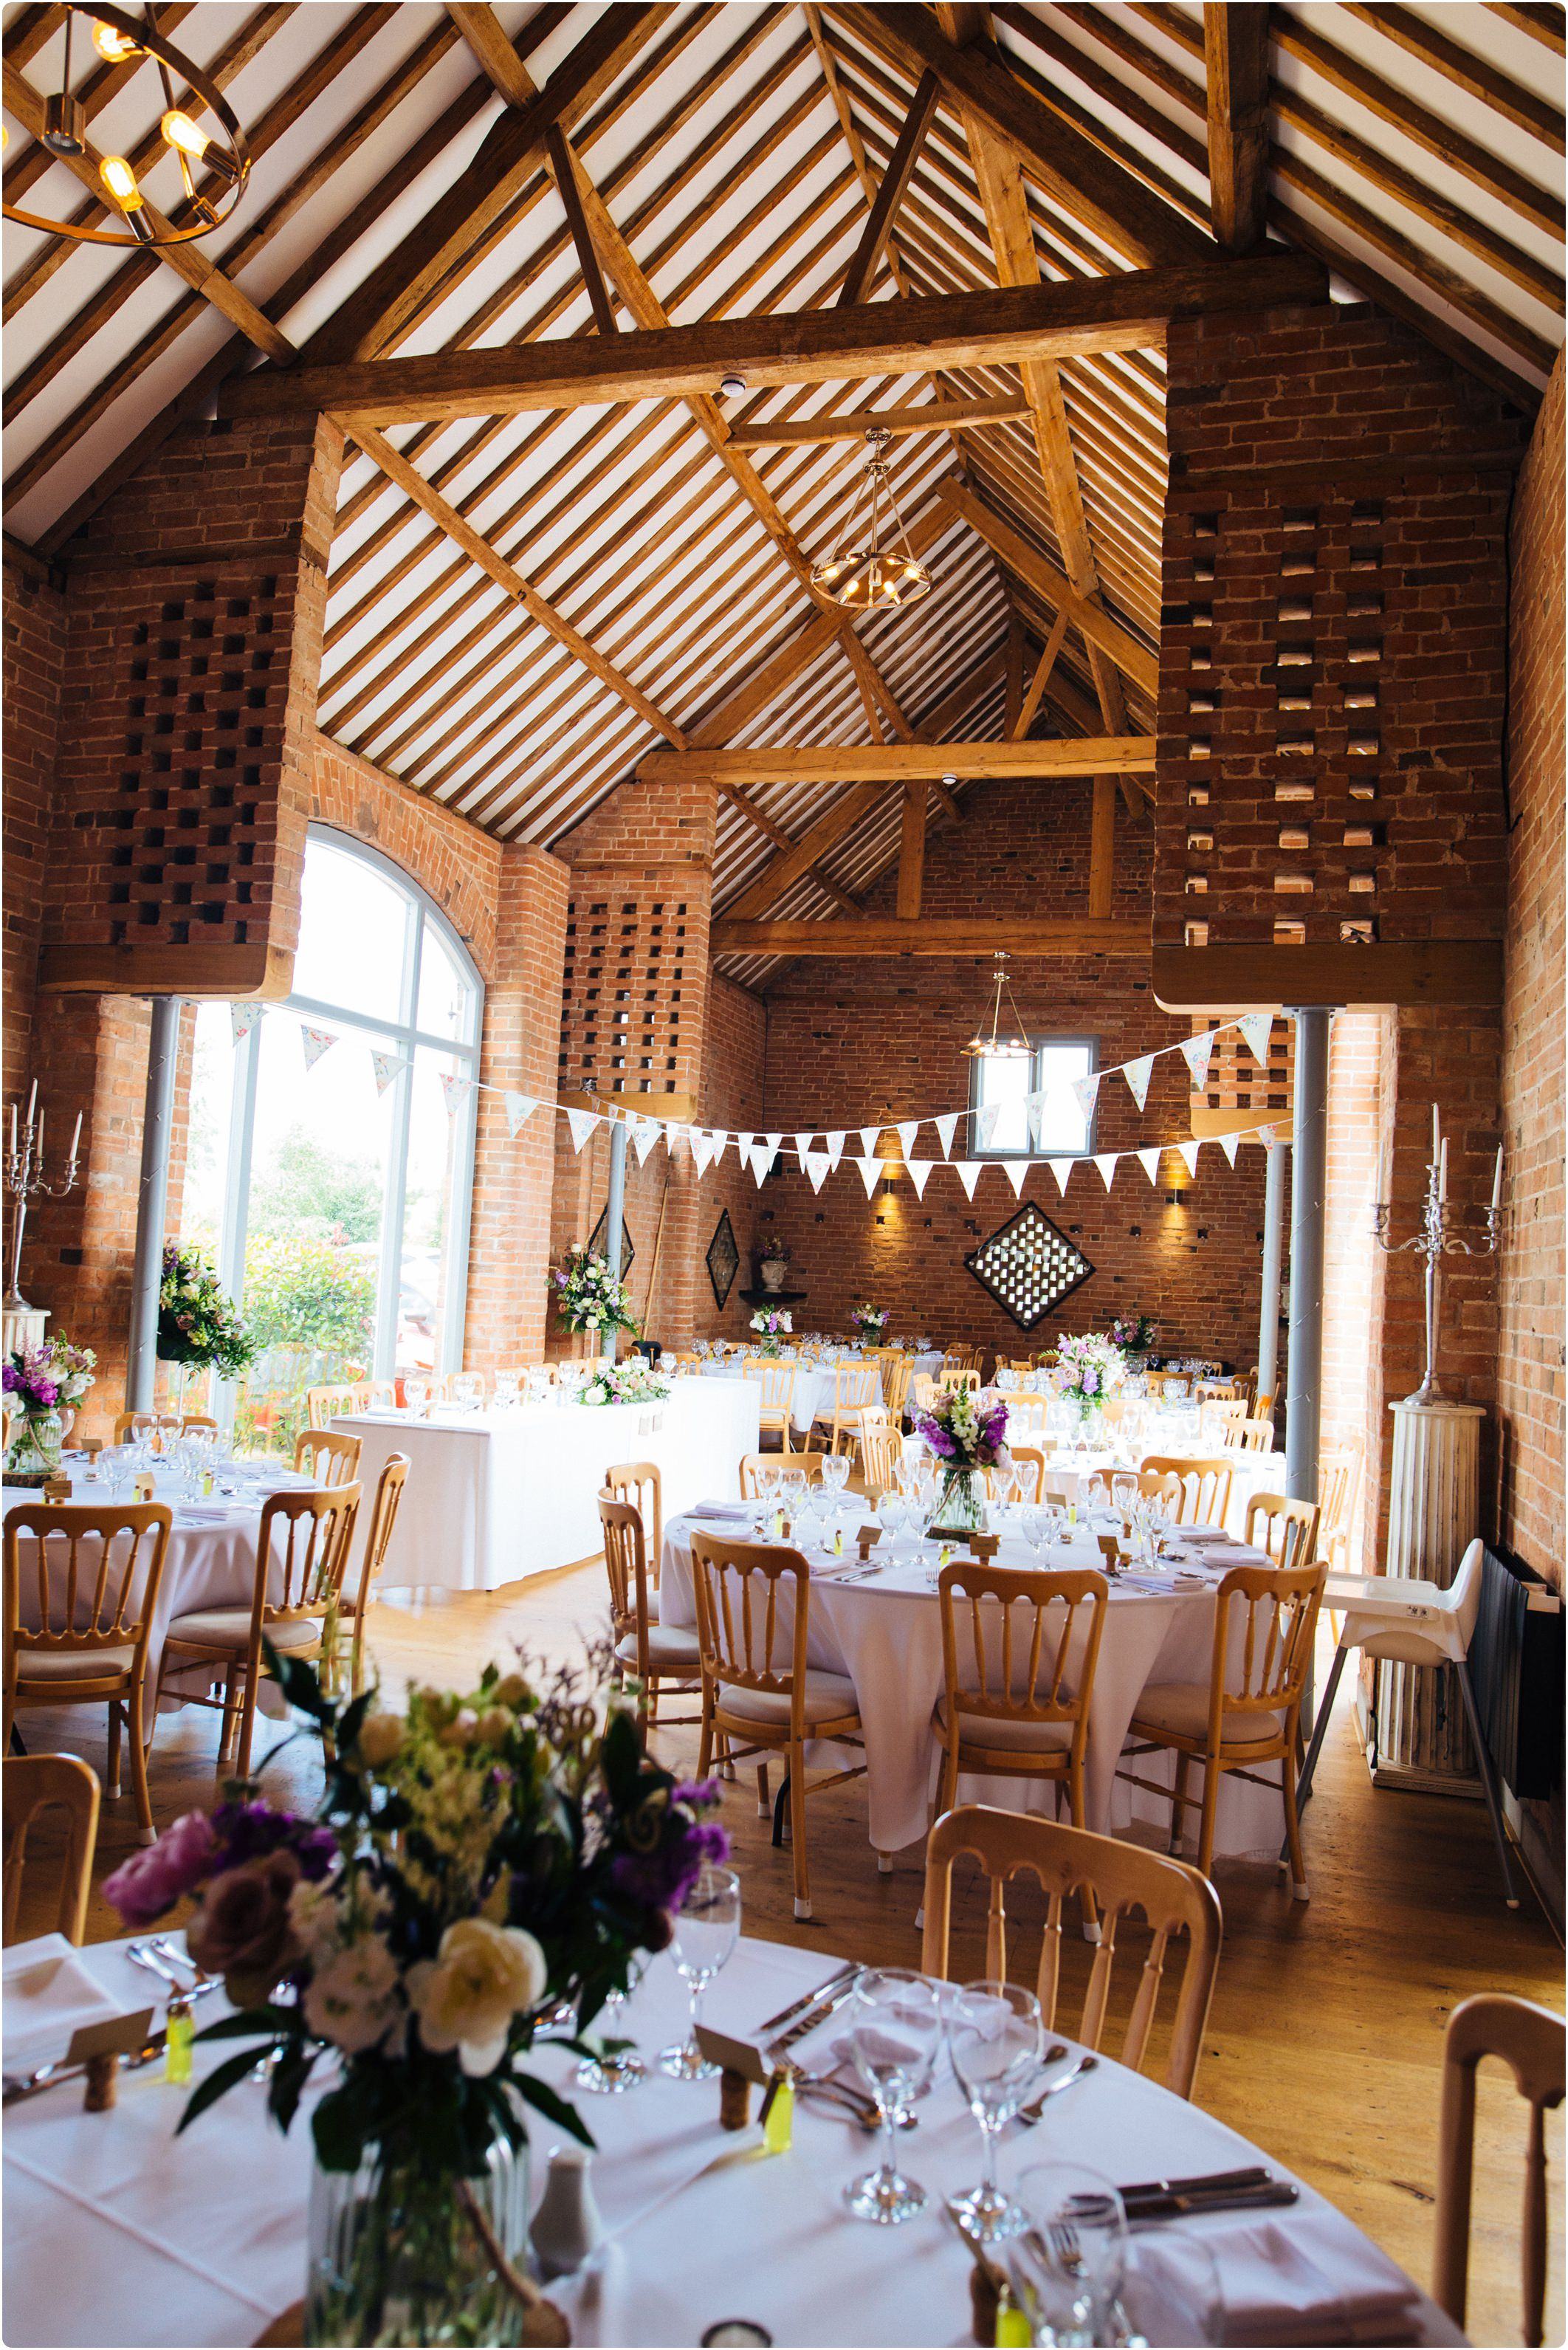 Swallows Nest Barn wedding table set up